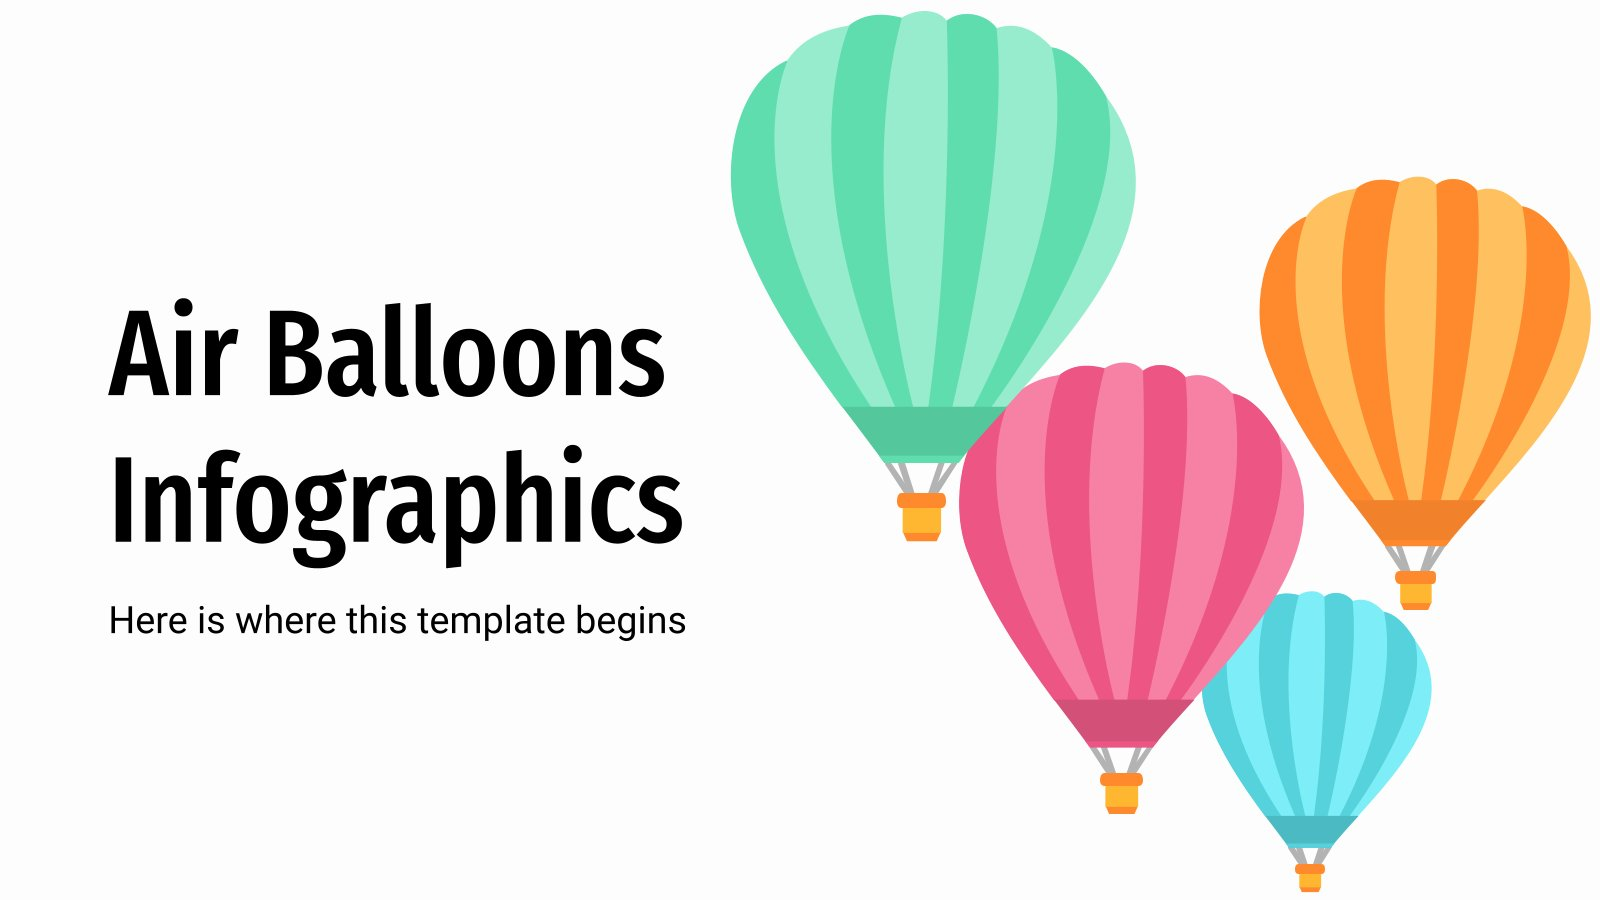 Air Balloons Infographics presentation template